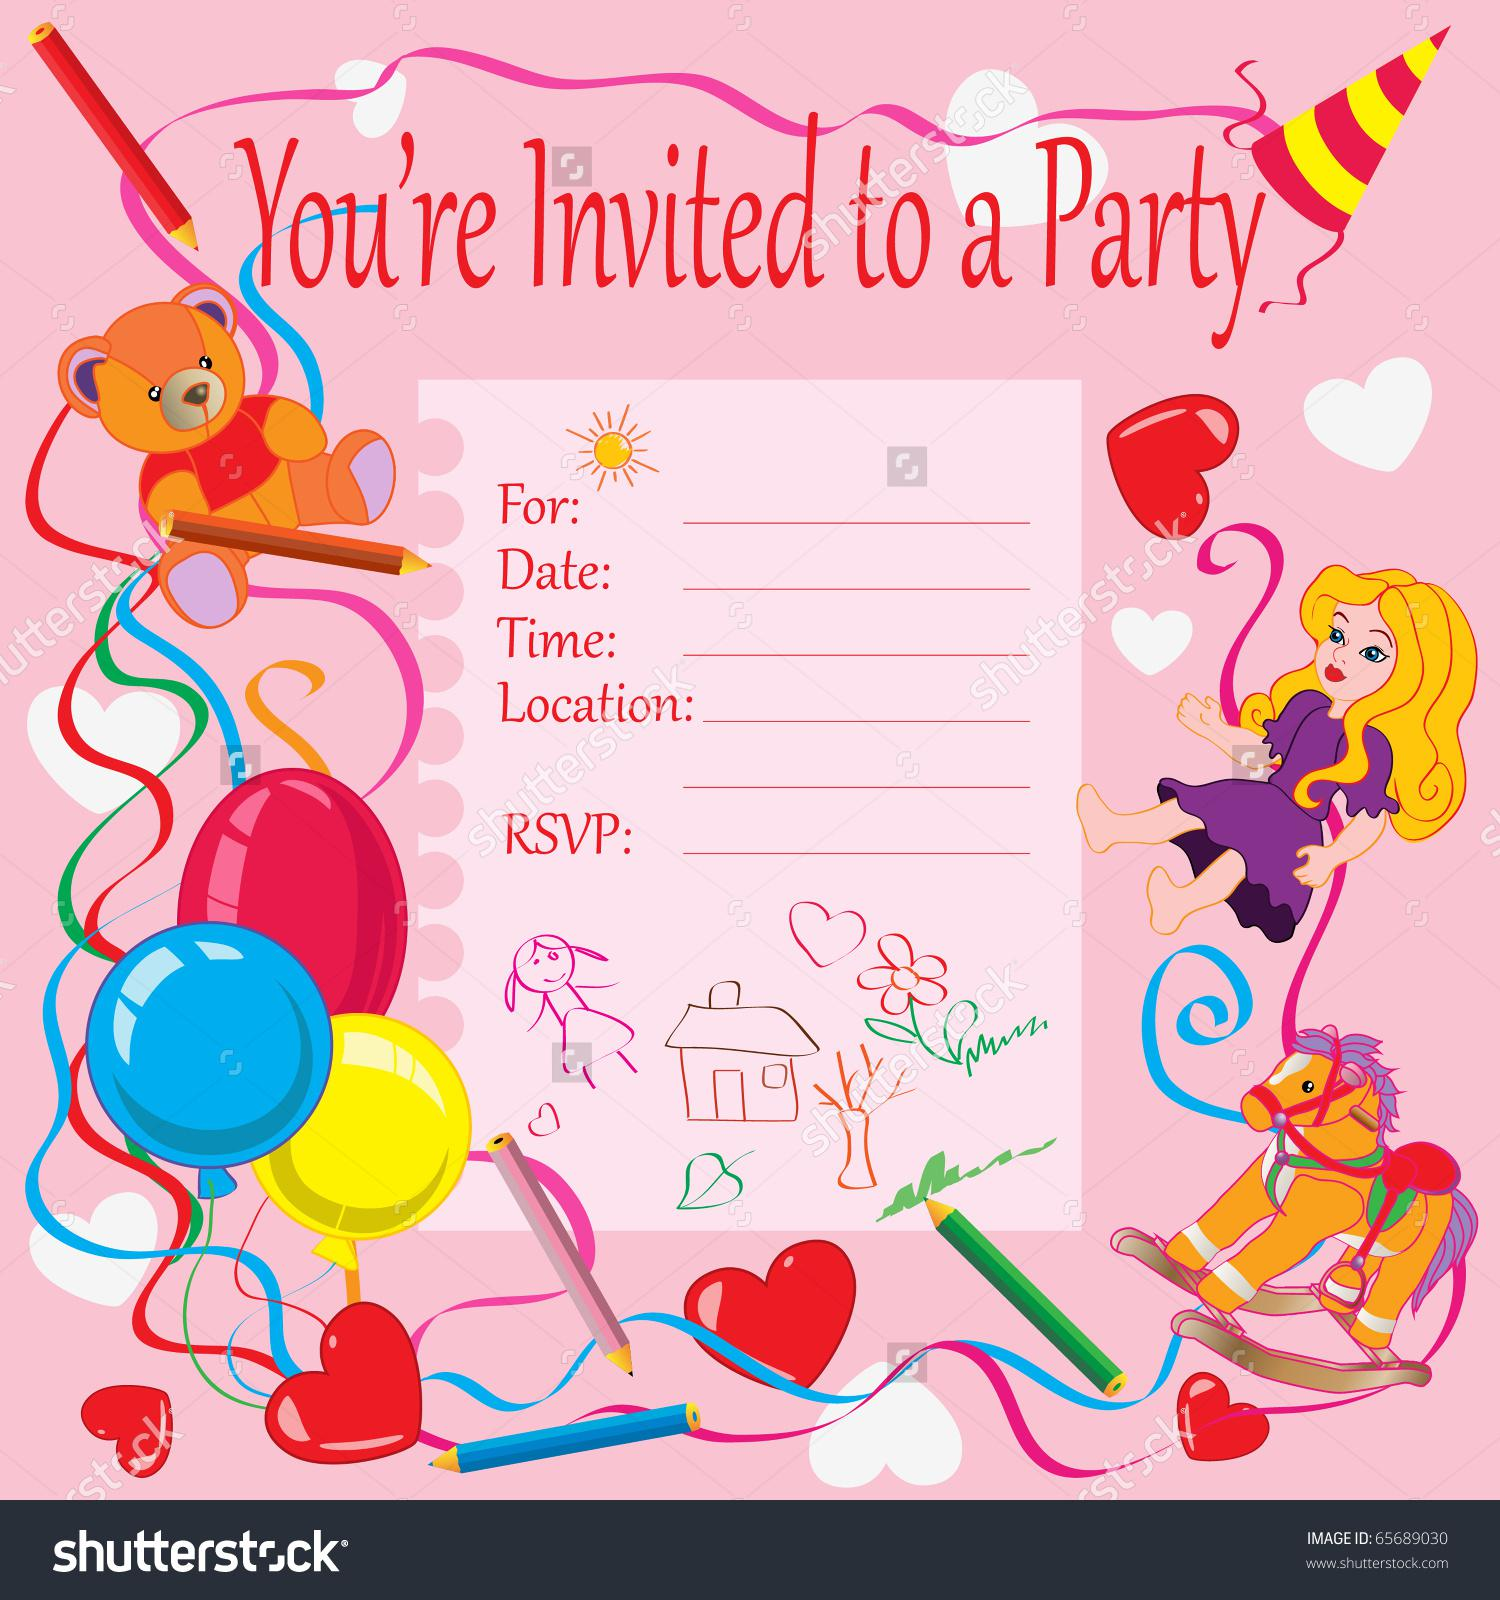 4 Step Make Your Own Birthday Invitations Free Sample Printable – Sample Party Invitation Card